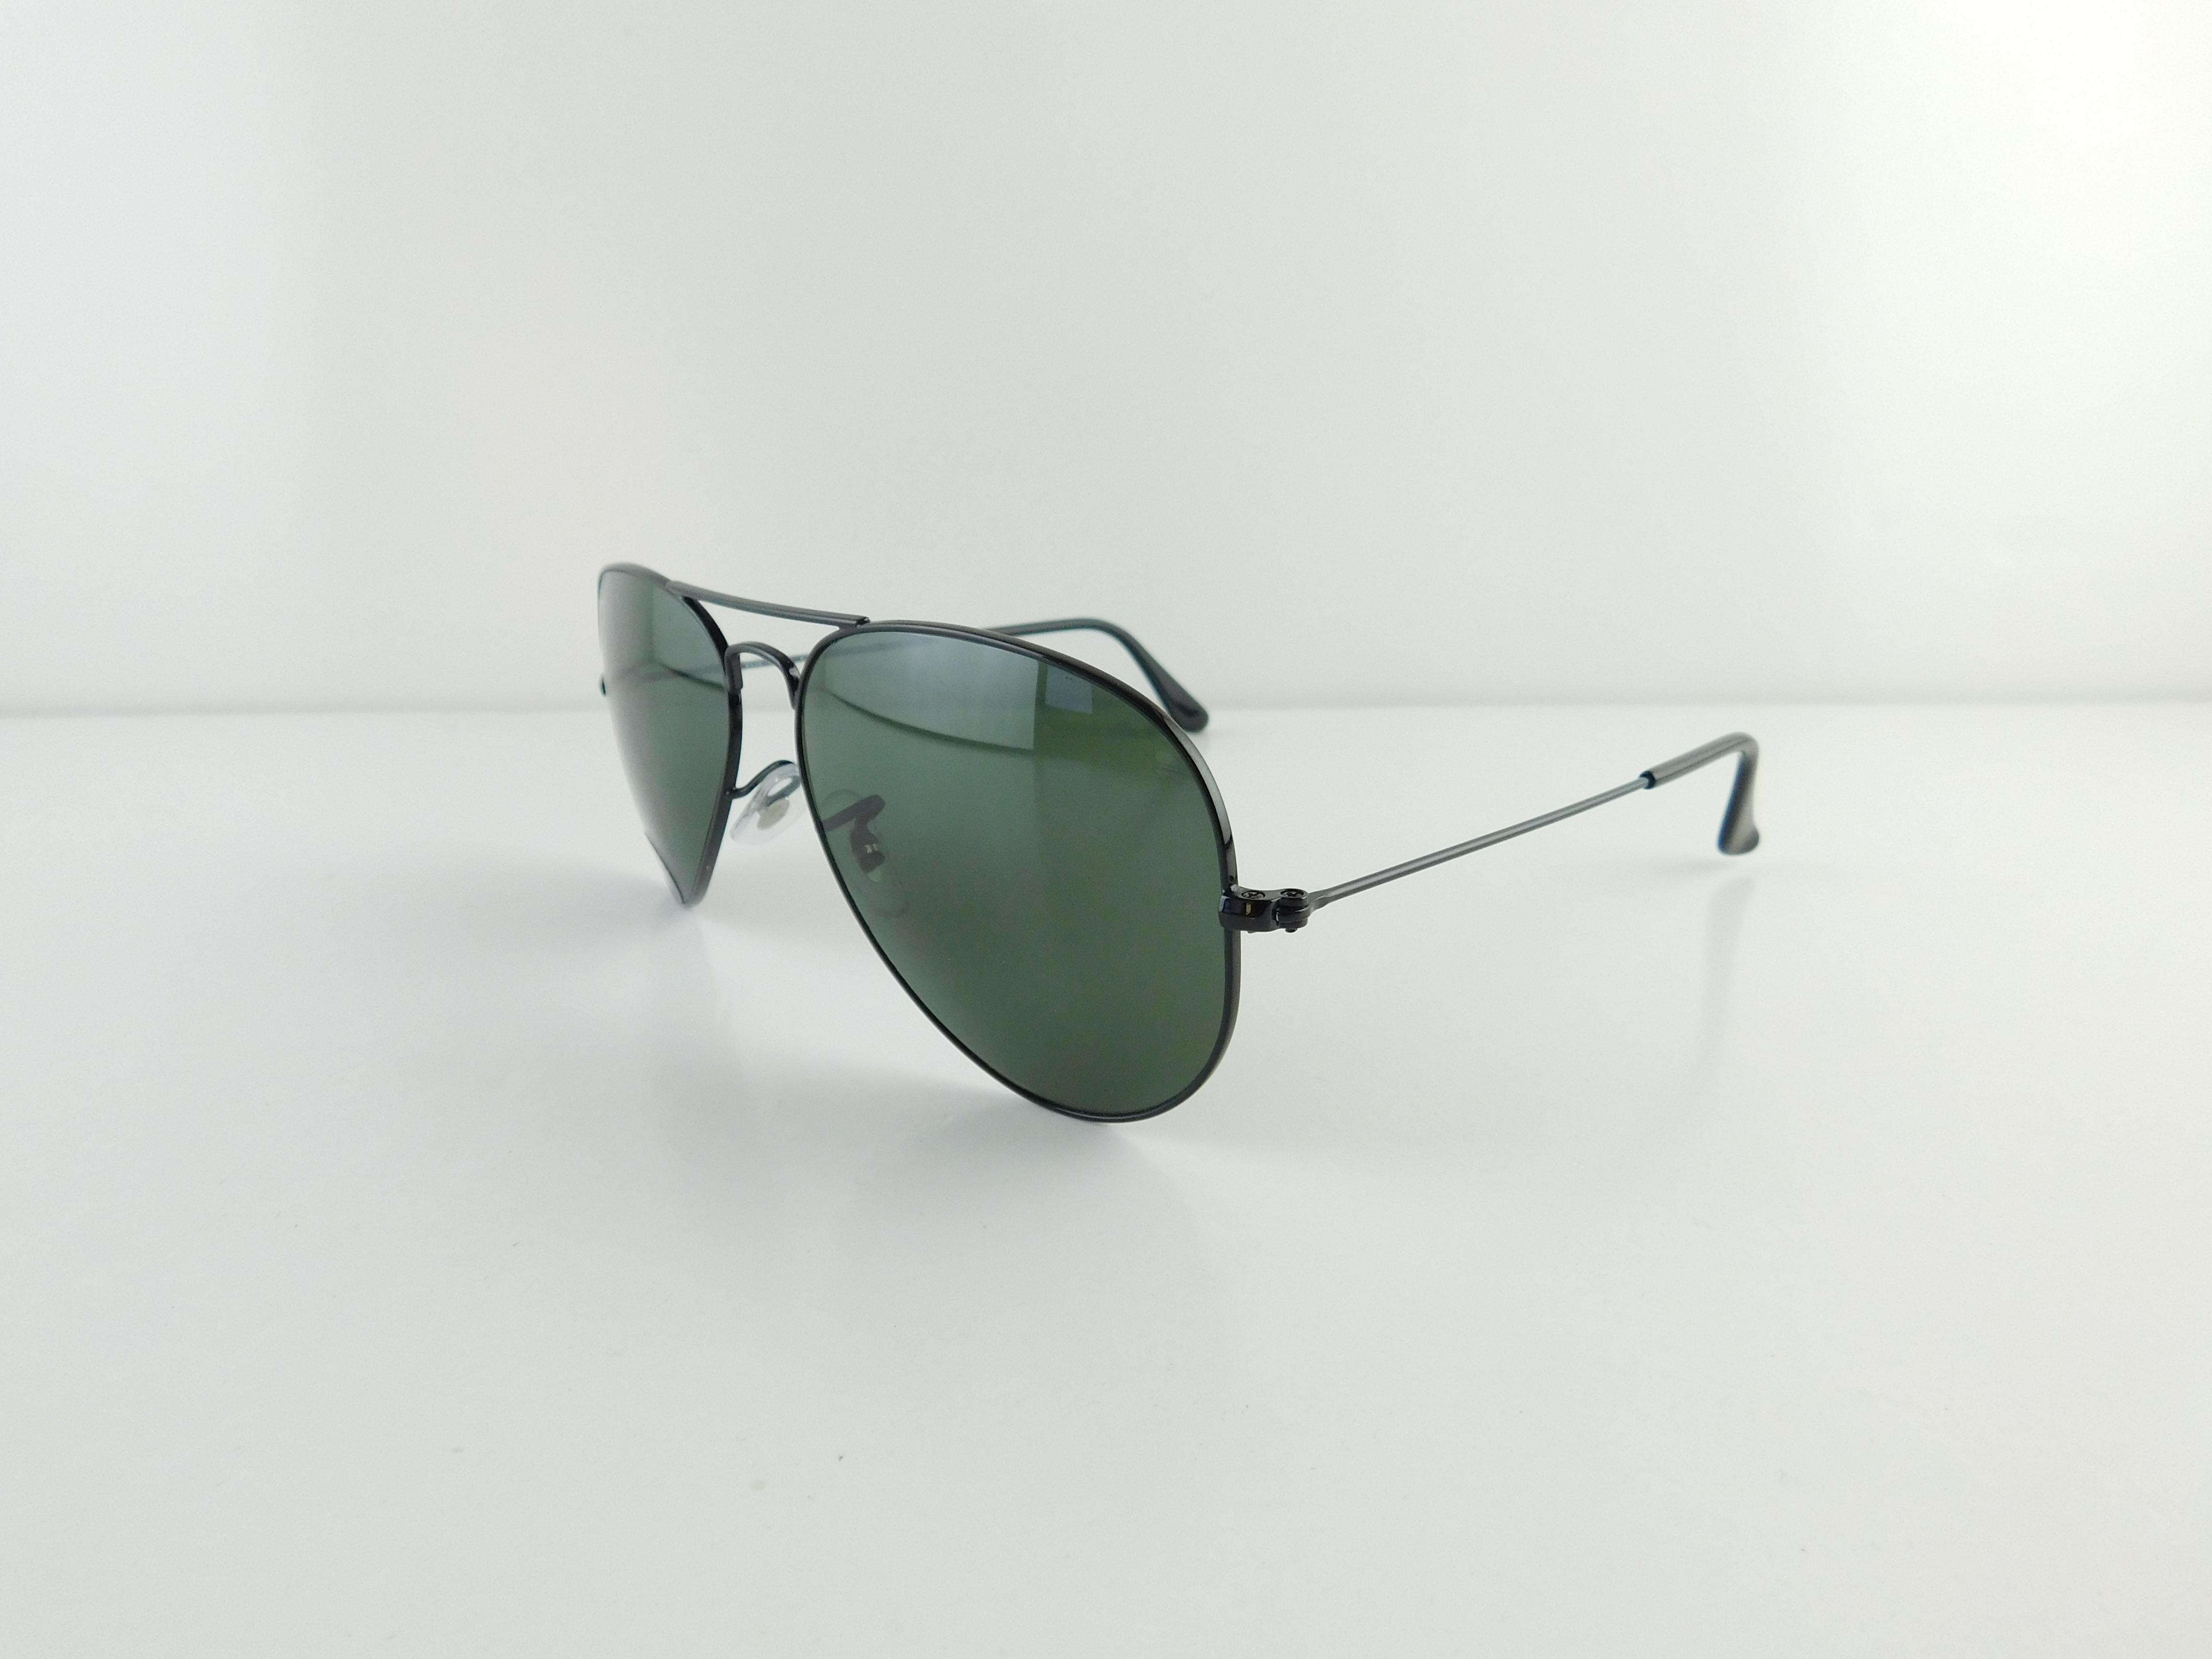 8649b2b66 ... low price ray ban black gently used 3025 l2823 aviator large metal full  frame made in